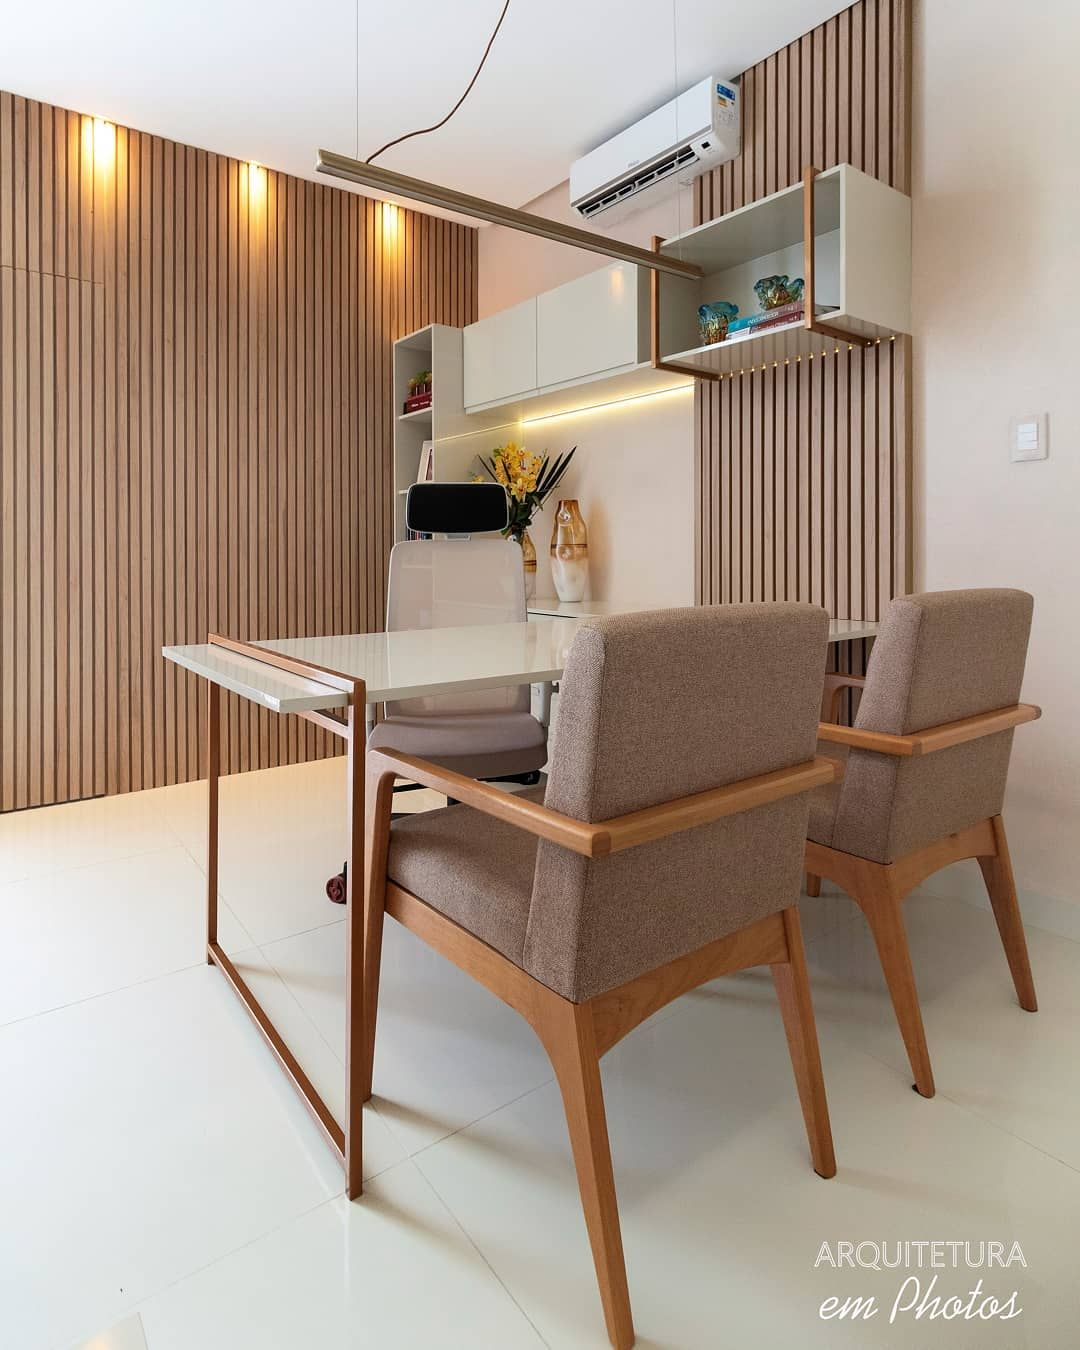 home office, white floor tiles, wooden grid wall, white wall, white table with wooden frame, wooden chairs with brown cushion, white floating shelves